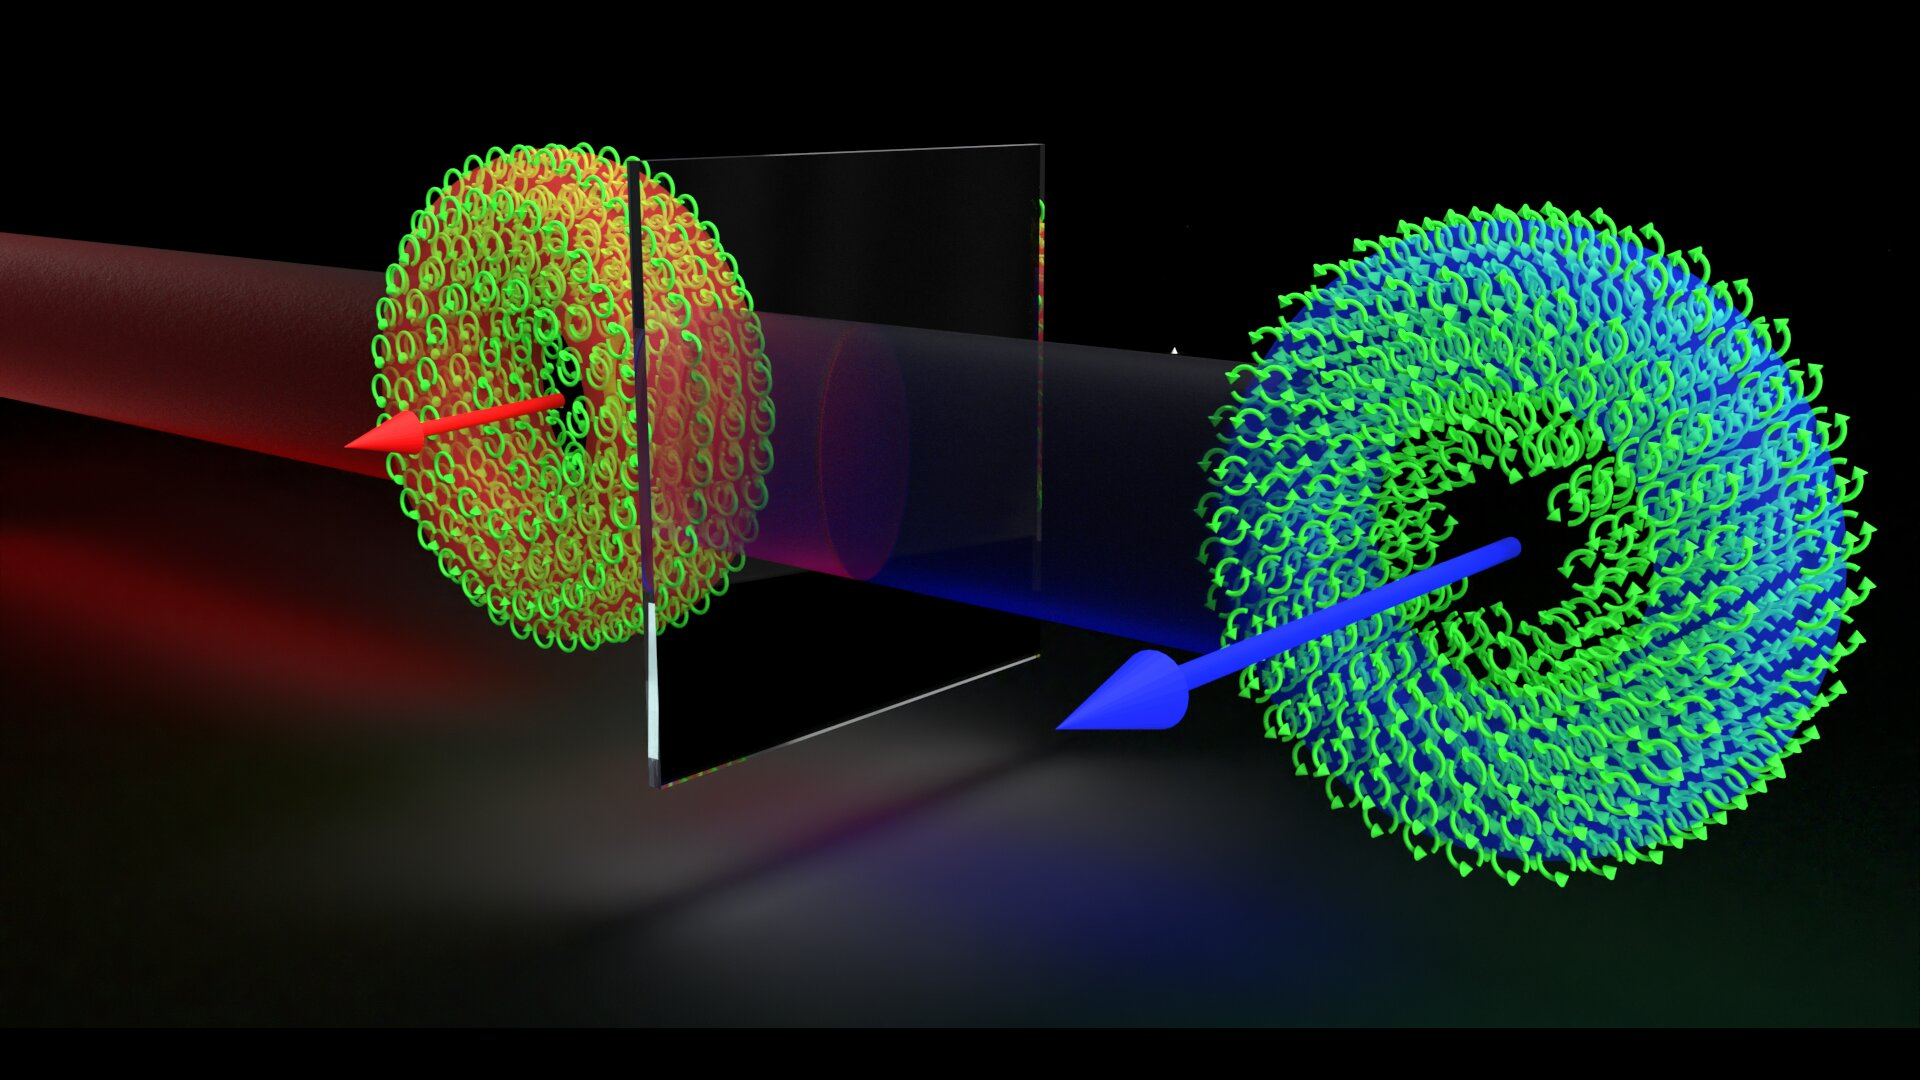 Study demonstrates swarm of photons that somersault in lockstep